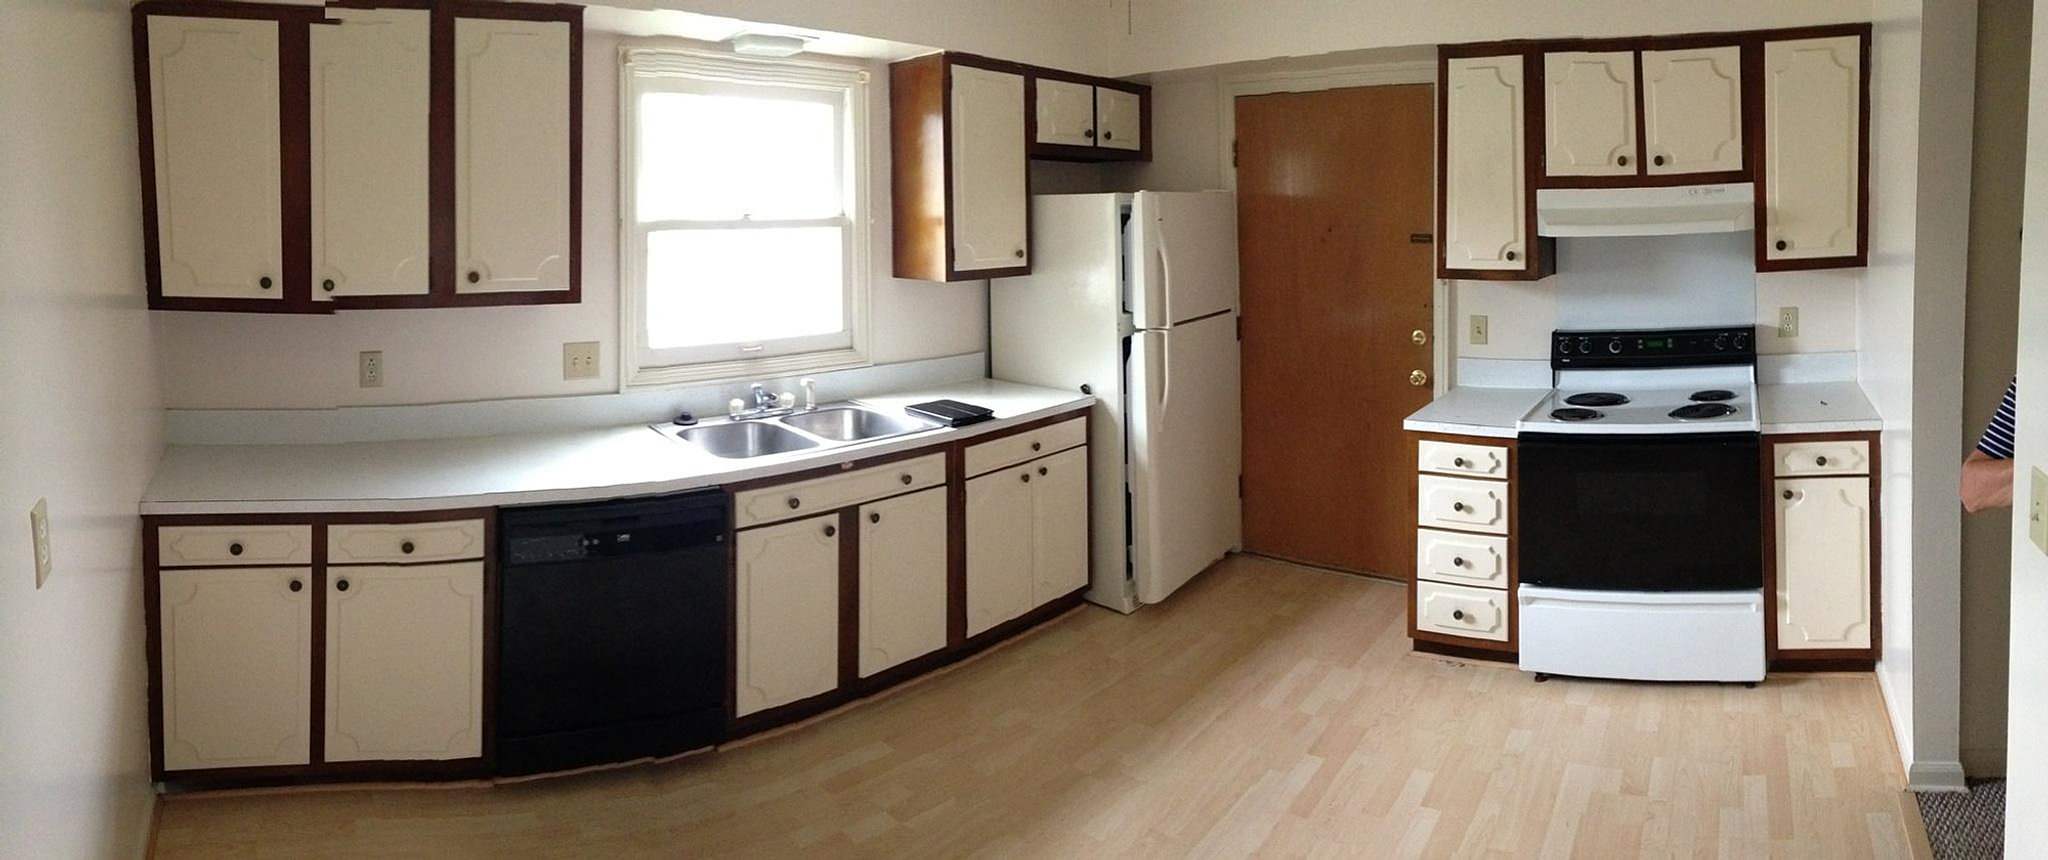 Lincoln Village Apartments Beckley Wv Unfurnished Apartments